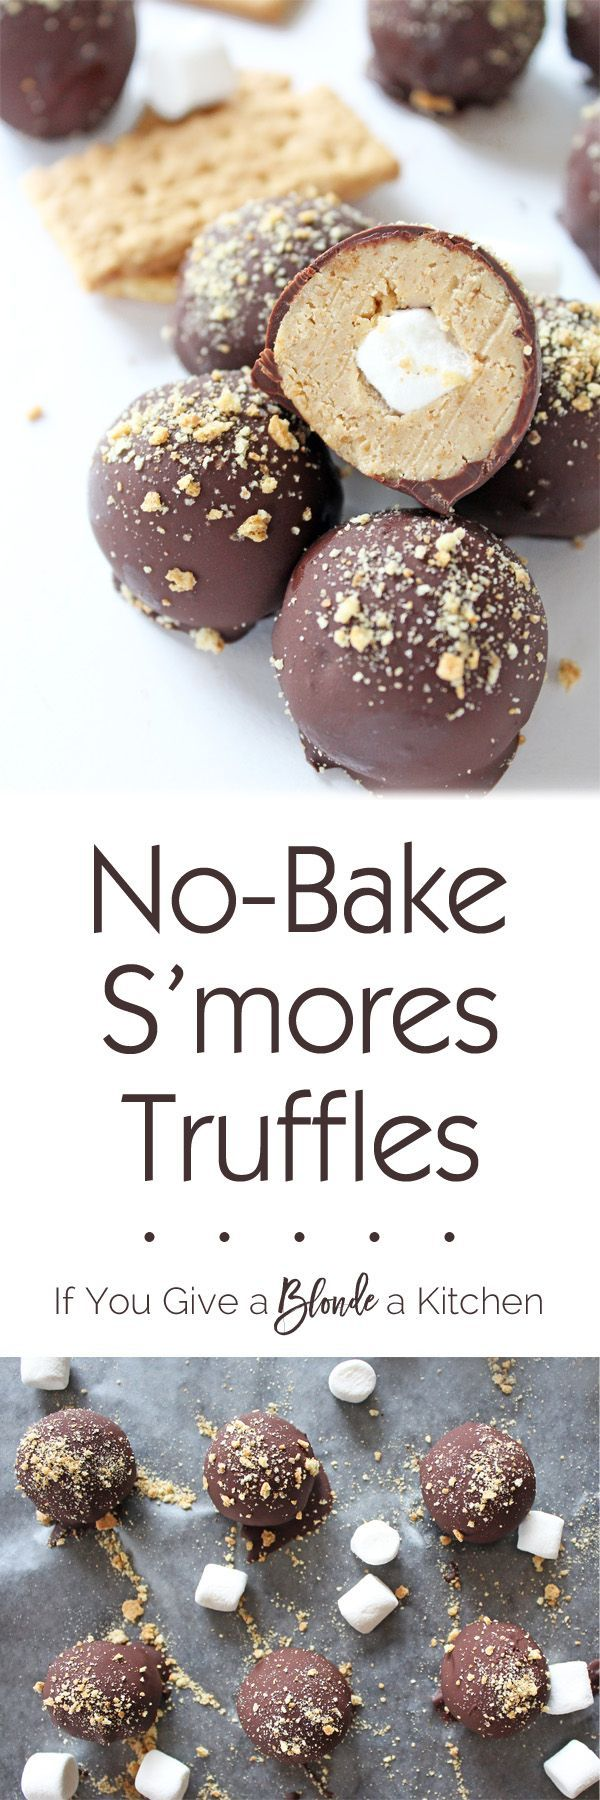 S'mores truffles are no-bake summertime treats made with crushed graham crackers, marshmallow fluff, melted chocolate and a mini marshmallow hiding inside! | Recipe on http://www.ifyougiveablondeakitchen.com